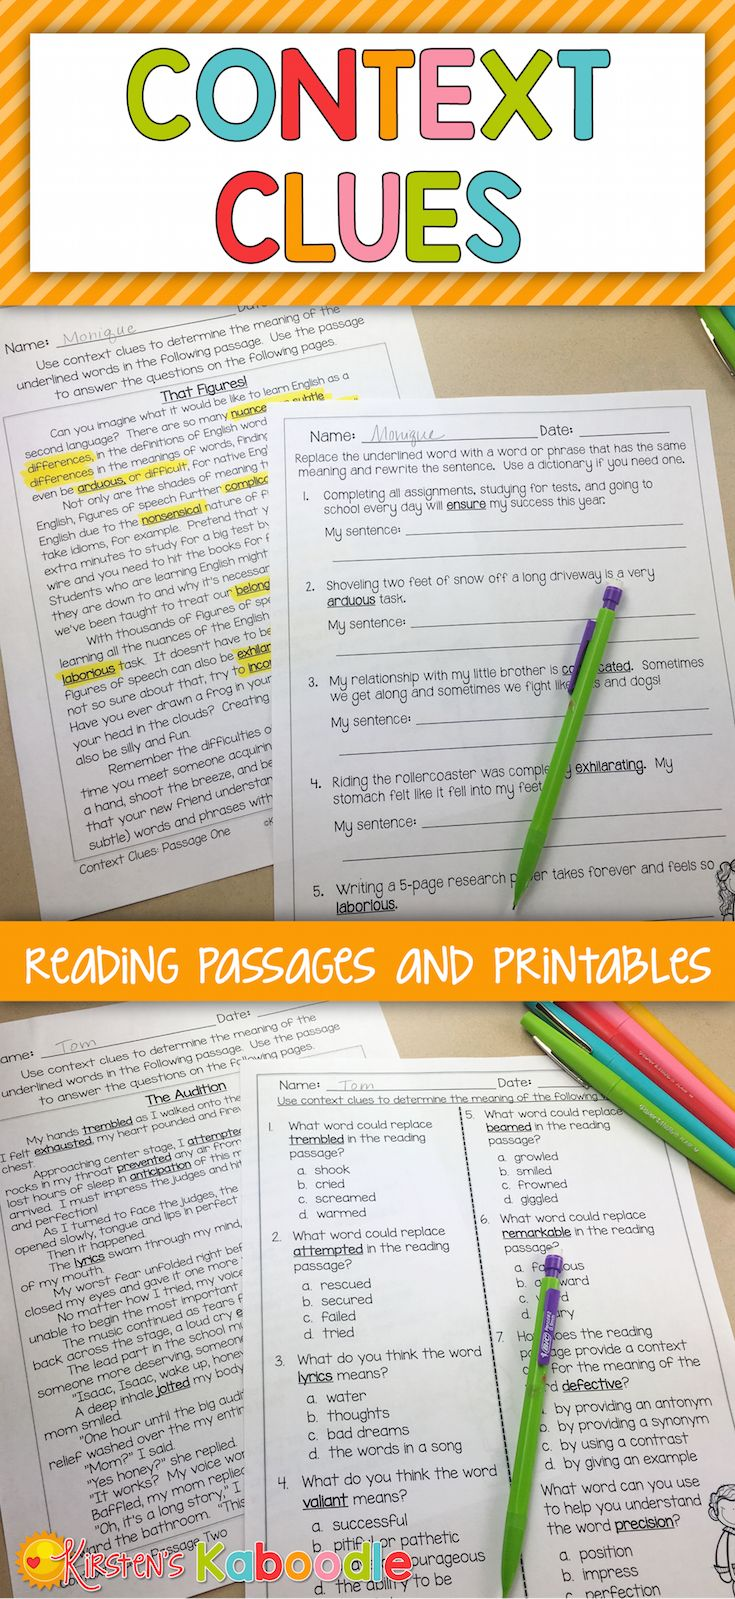 Are you looking for no prep context clues reading passages? This product offers print and go, common core aligned, easy to use context clues activities for 3rd, 4th, and 5th grade. This product includes four instructional pages to help students identify context clues, as well as 3 different (full page) reading passages with three printables for each passage.  It's perfect as a test review, skill reinforcement for small groups, or  whole class context clues instruction.